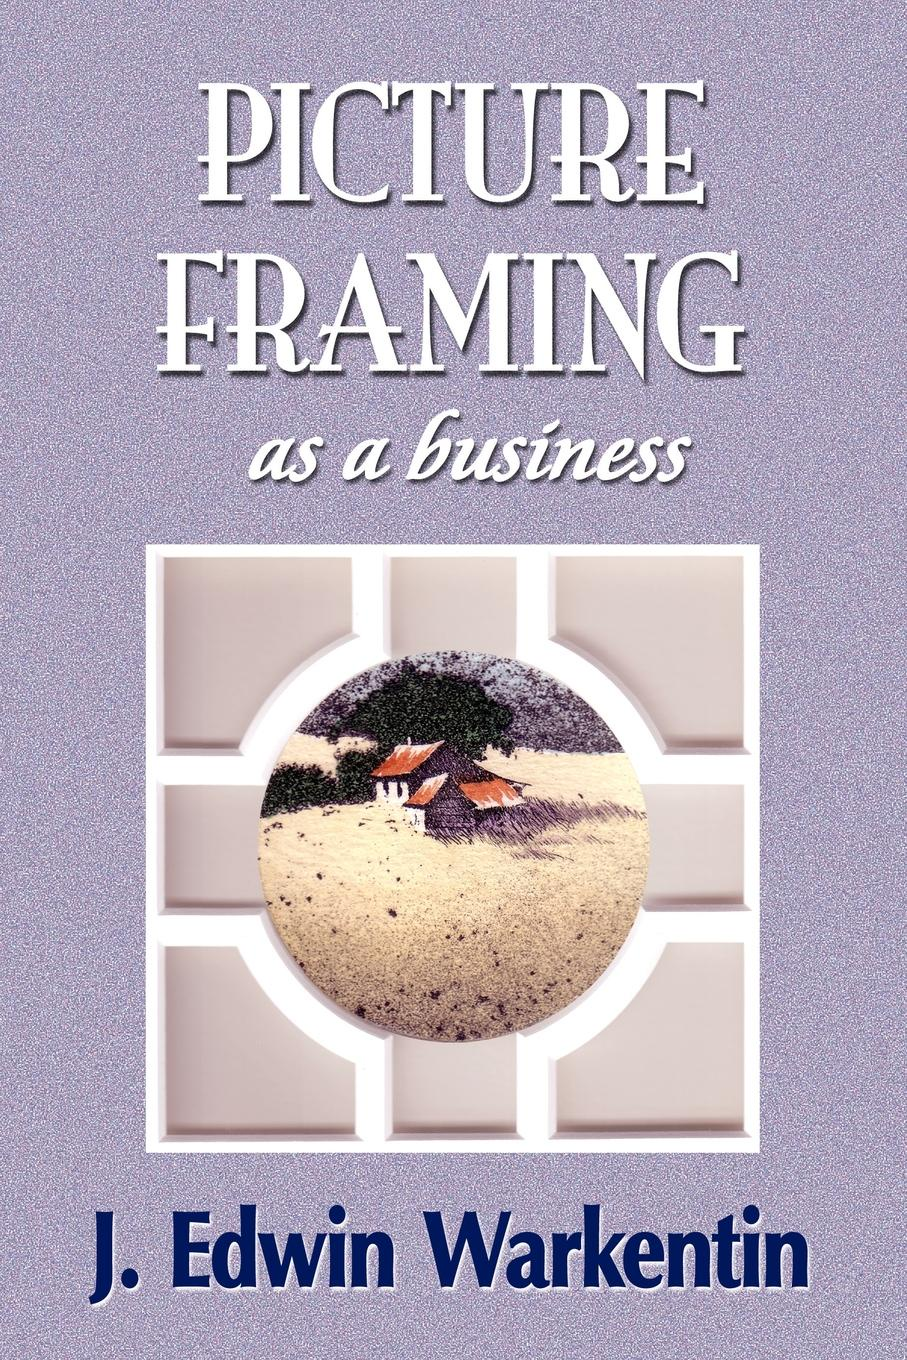 J. Edwin Warkentin PICTURE FRAMING as a Business